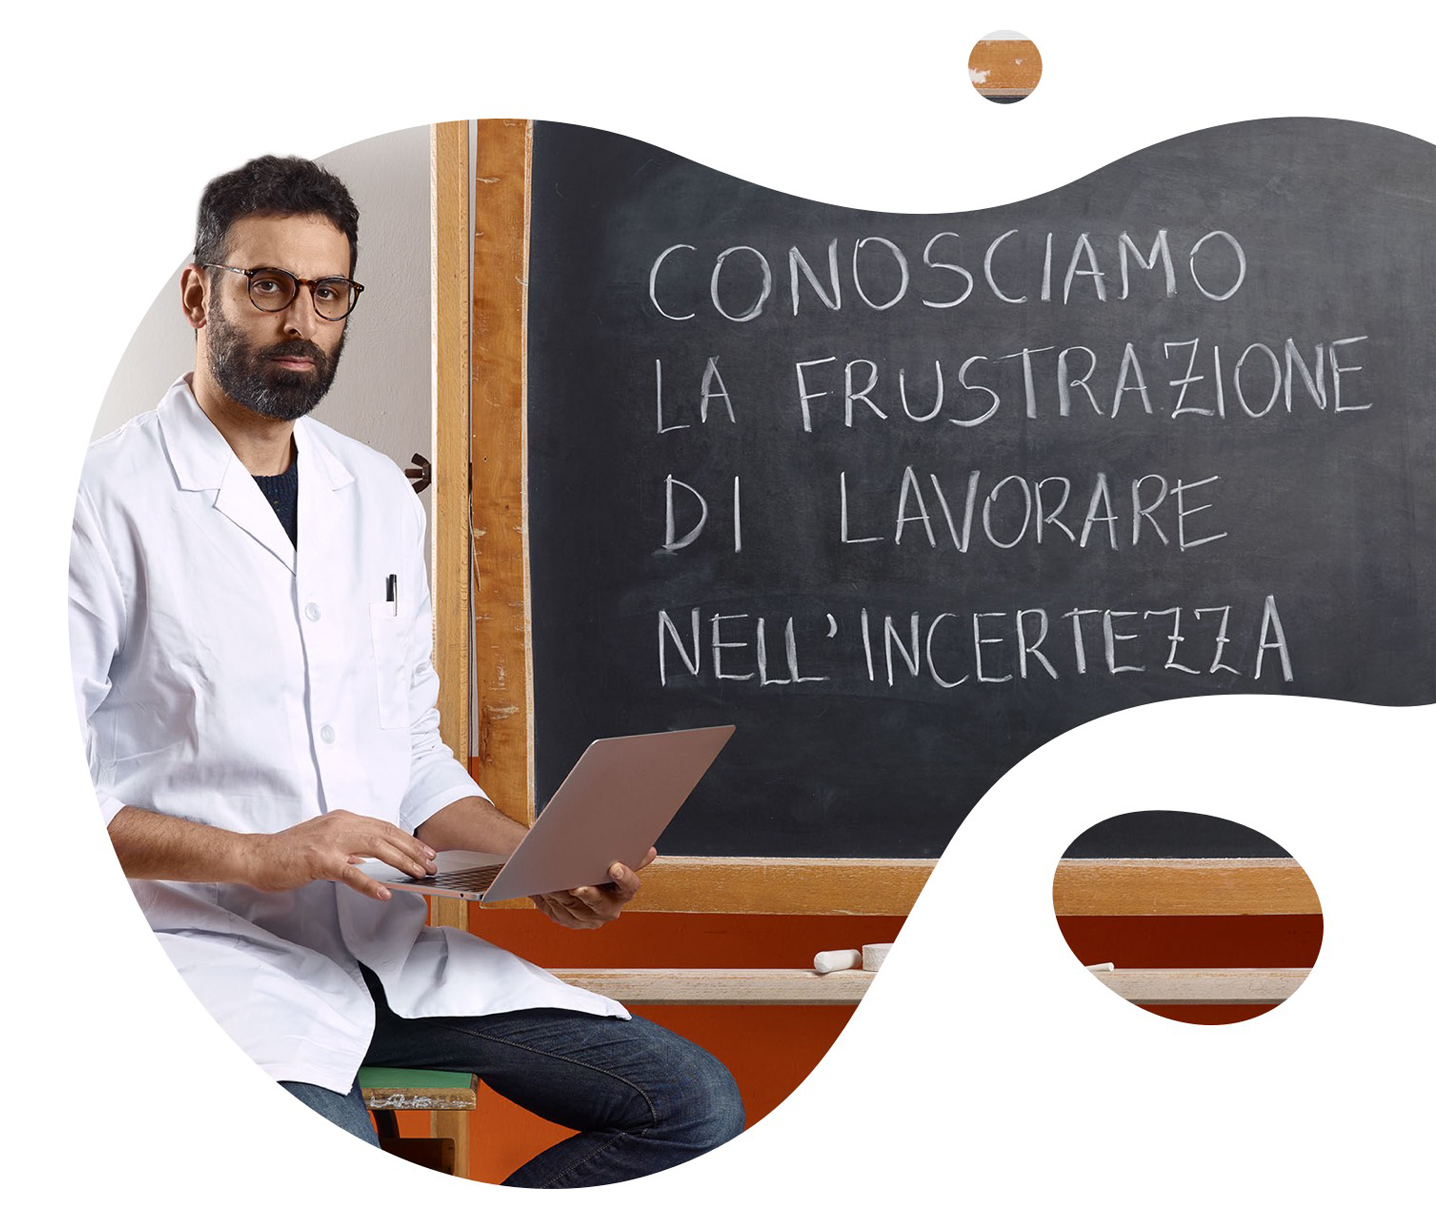 researcher seated on a school desk flc cgil campaign